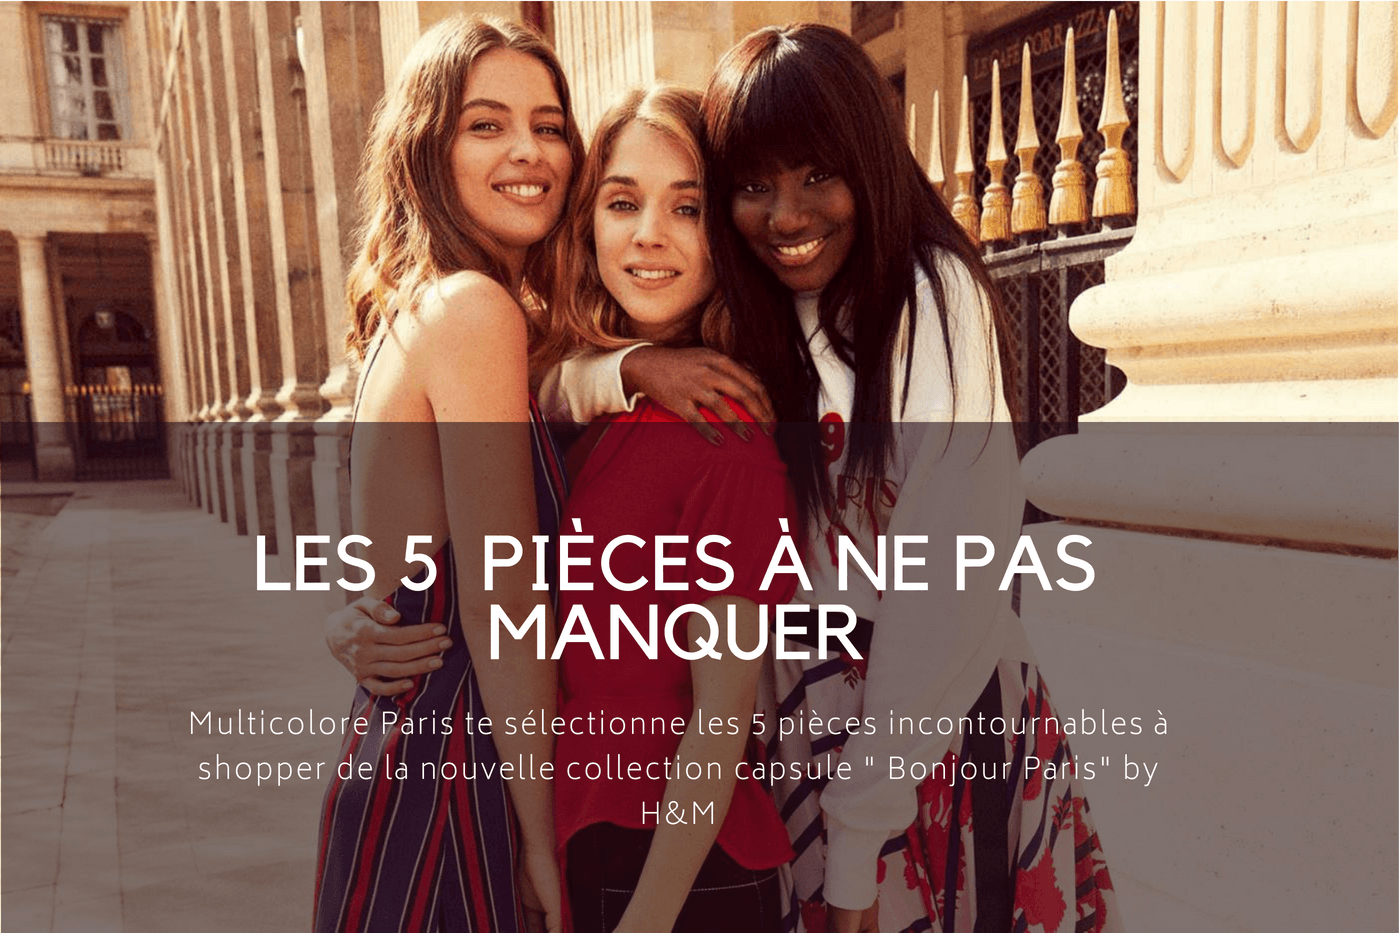 """BONJOUR PARIS"" BY H&M  – THE 5 PIECES TO SHOP"